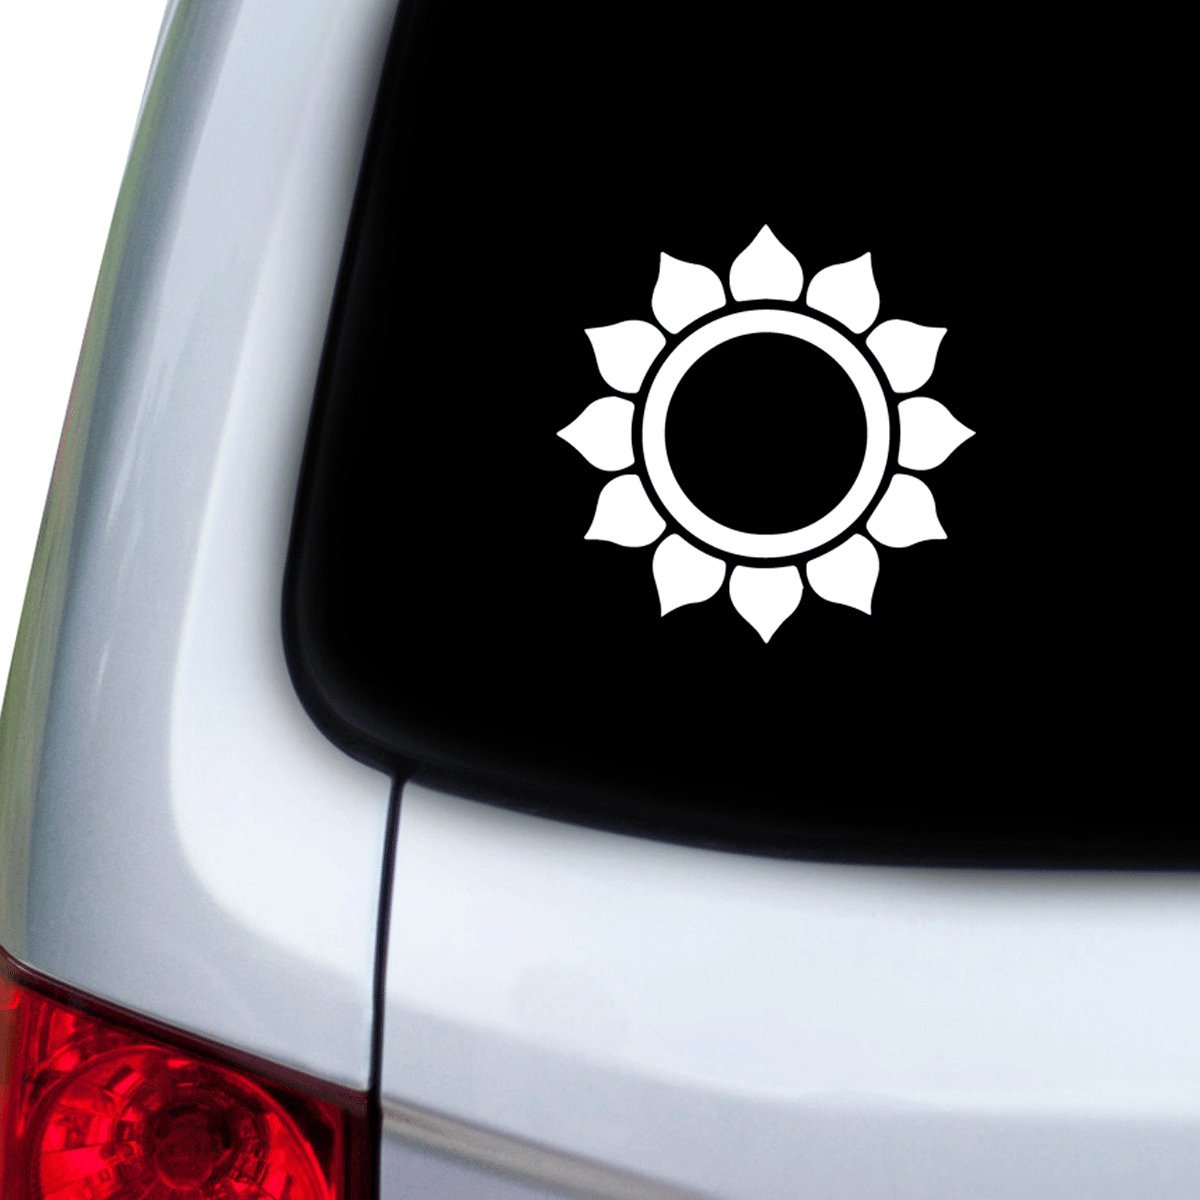 Hoods Doors StickAny Car and Auto Decal Series Sun Flower Modern Sticker for Windows White